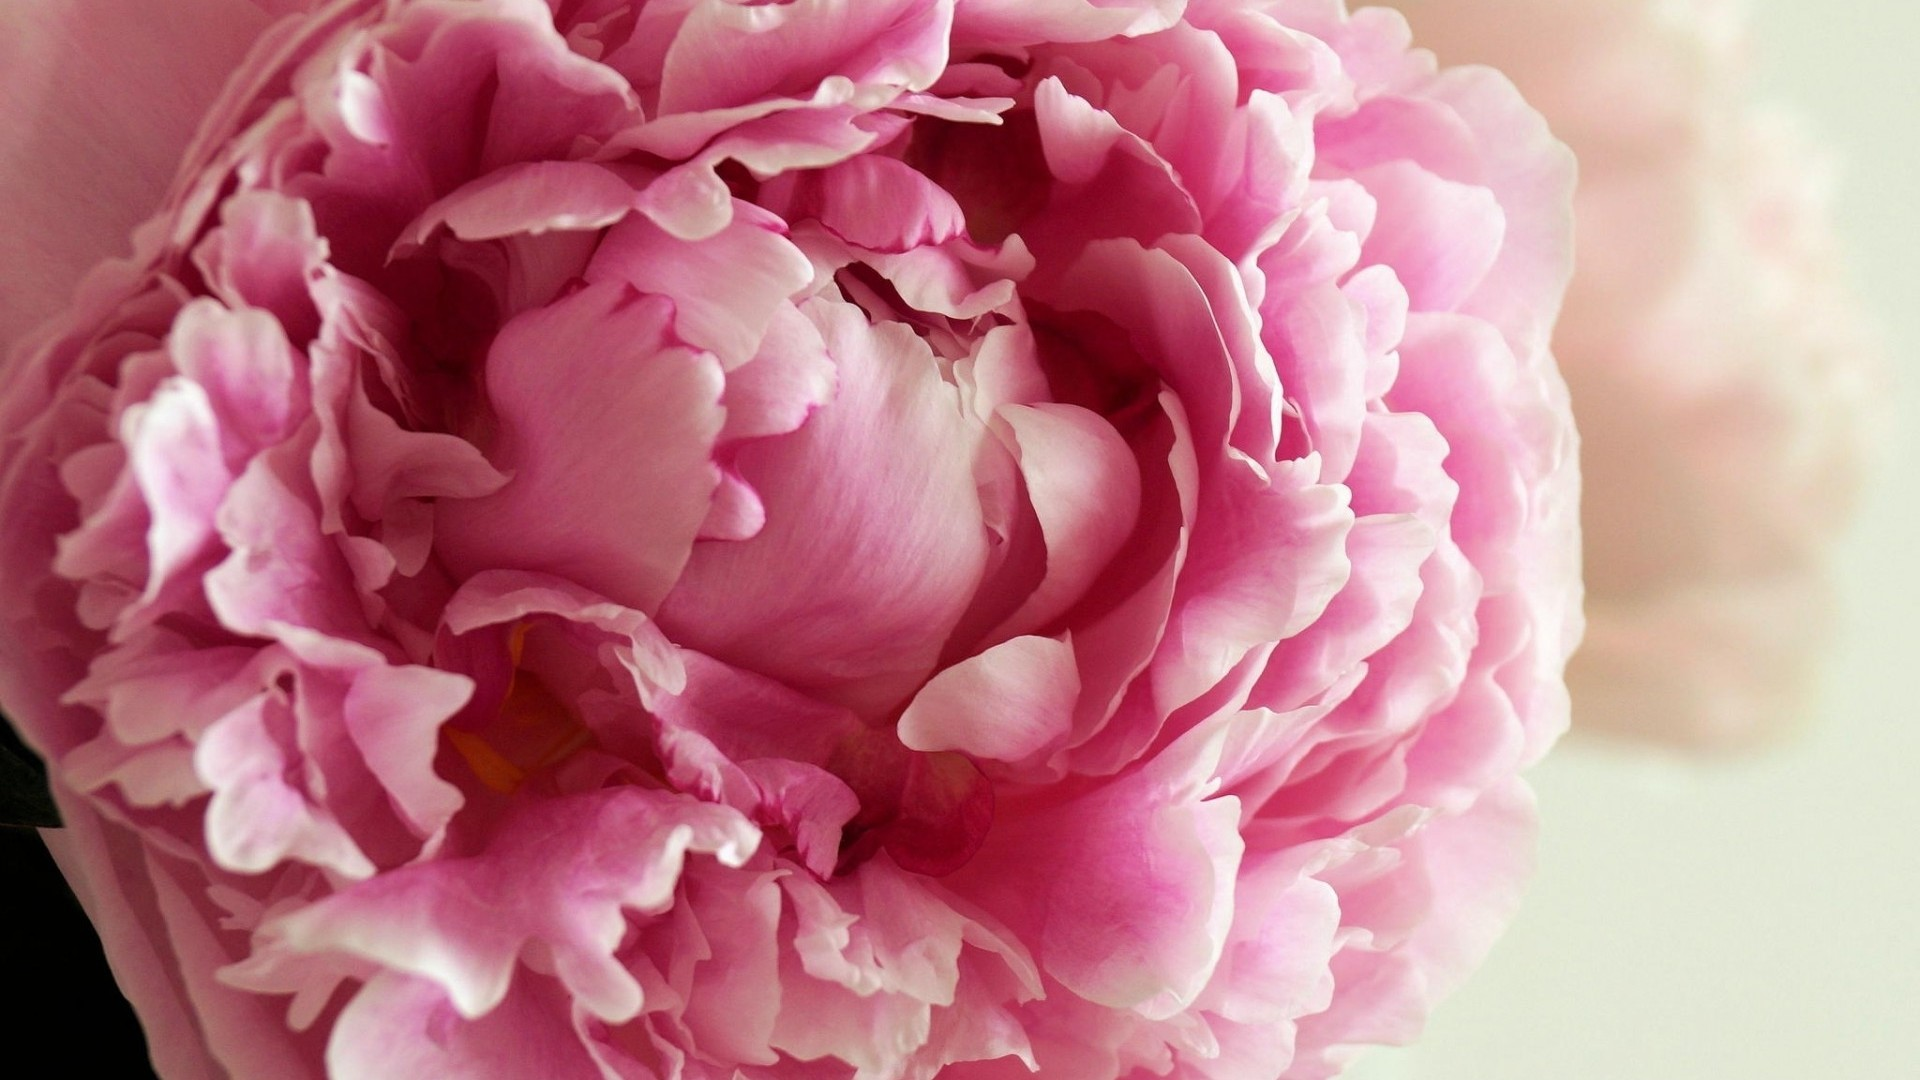 desktop wallpaper peonies (57+ images)